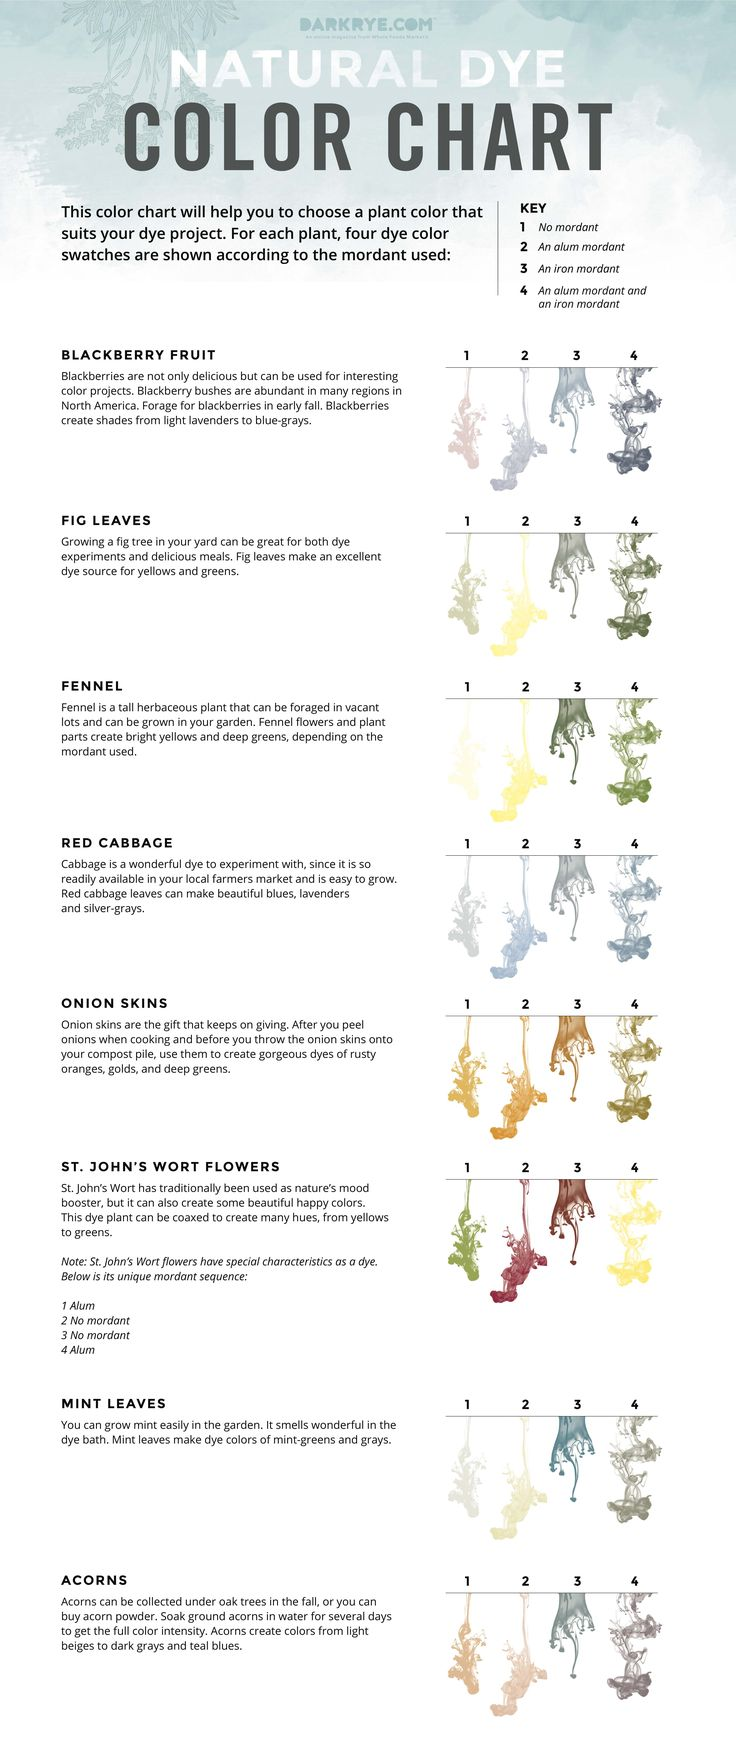 I think this is fascinating - it is very helpful to know about the mordant. And, maybe we should try the fig leaves! - - - Natural Dye Color Chart.